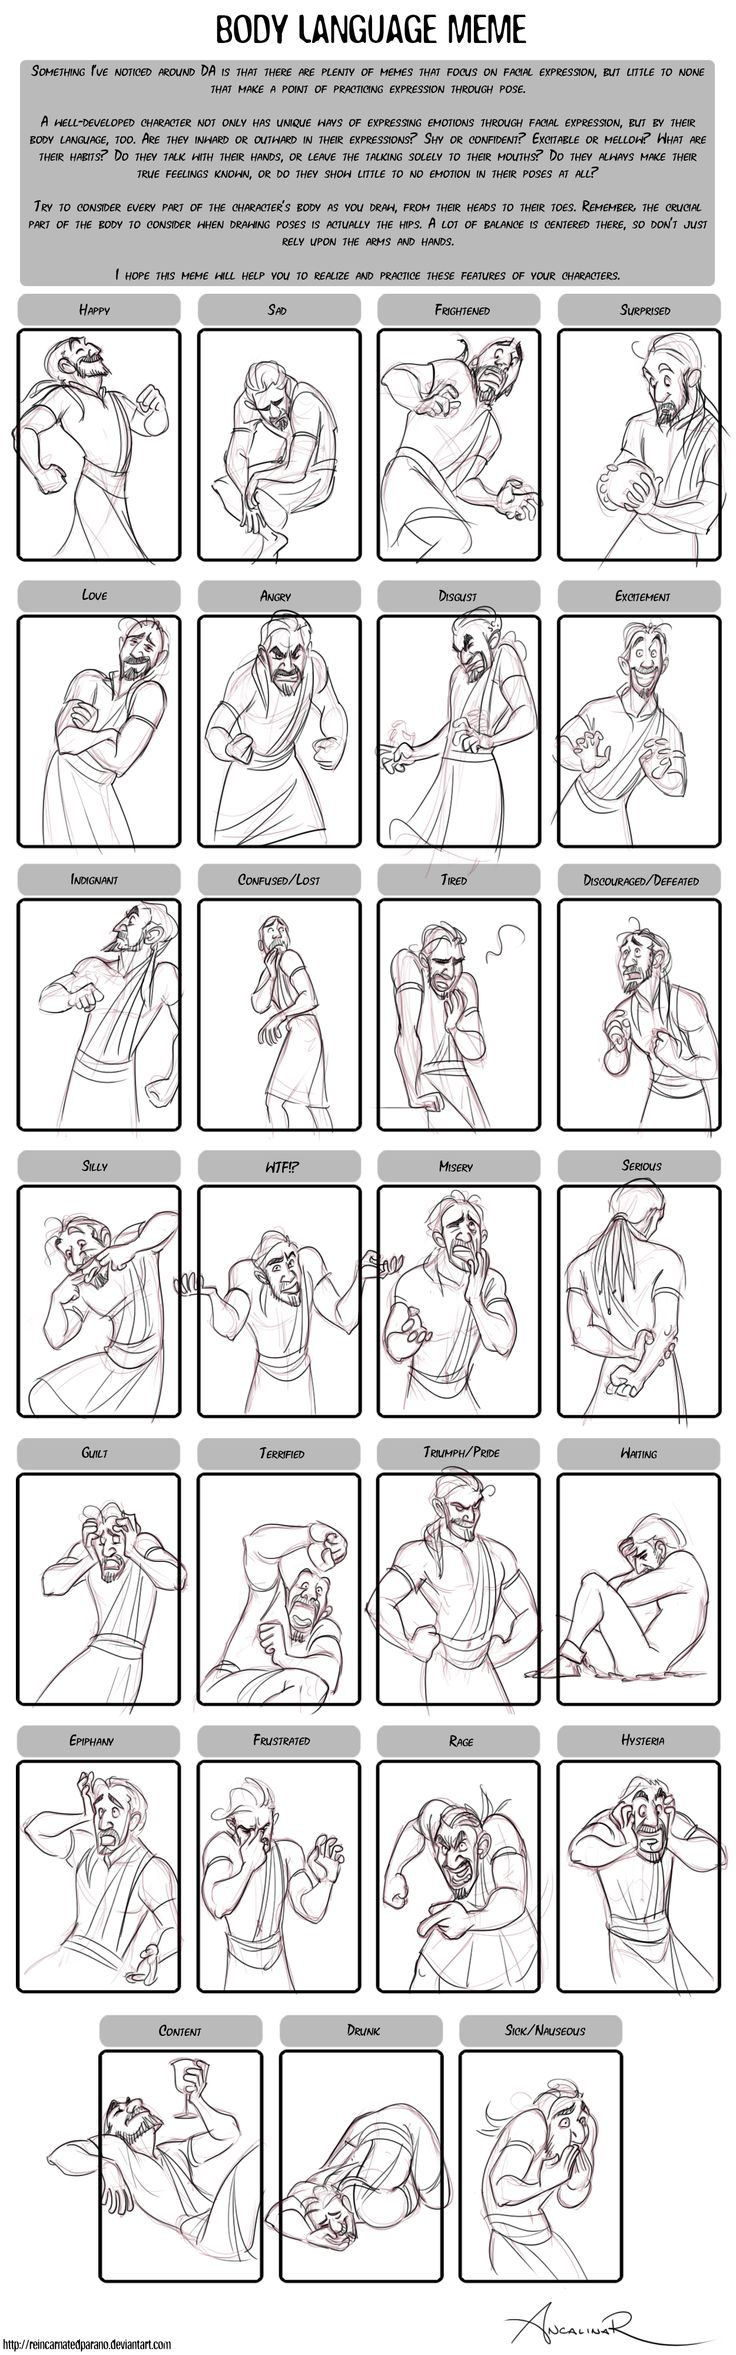 Body Language Meme by ancalinar.deviantart.com on @deviantART. http://bodylanguagesigns.uk